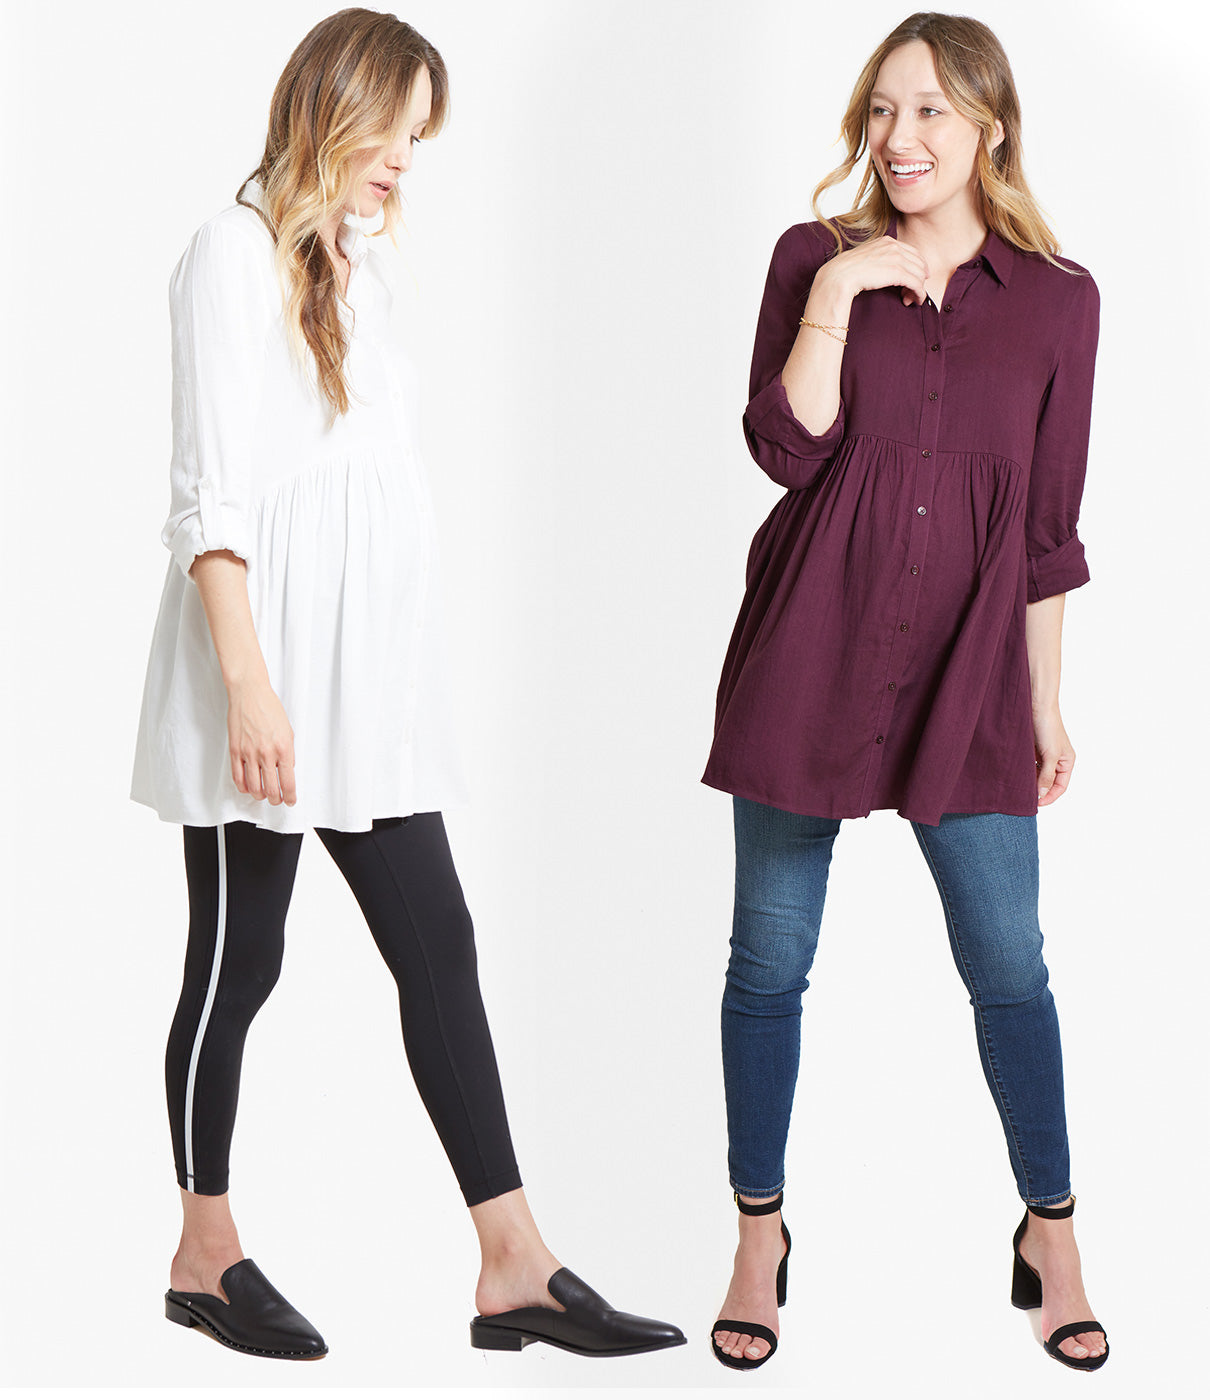 VERY VERSATILEThis take on a button-down can go workday casual (pair with a legging and mules) or date night (pair with denim and heels). In other words, it's a maternity wear staple.